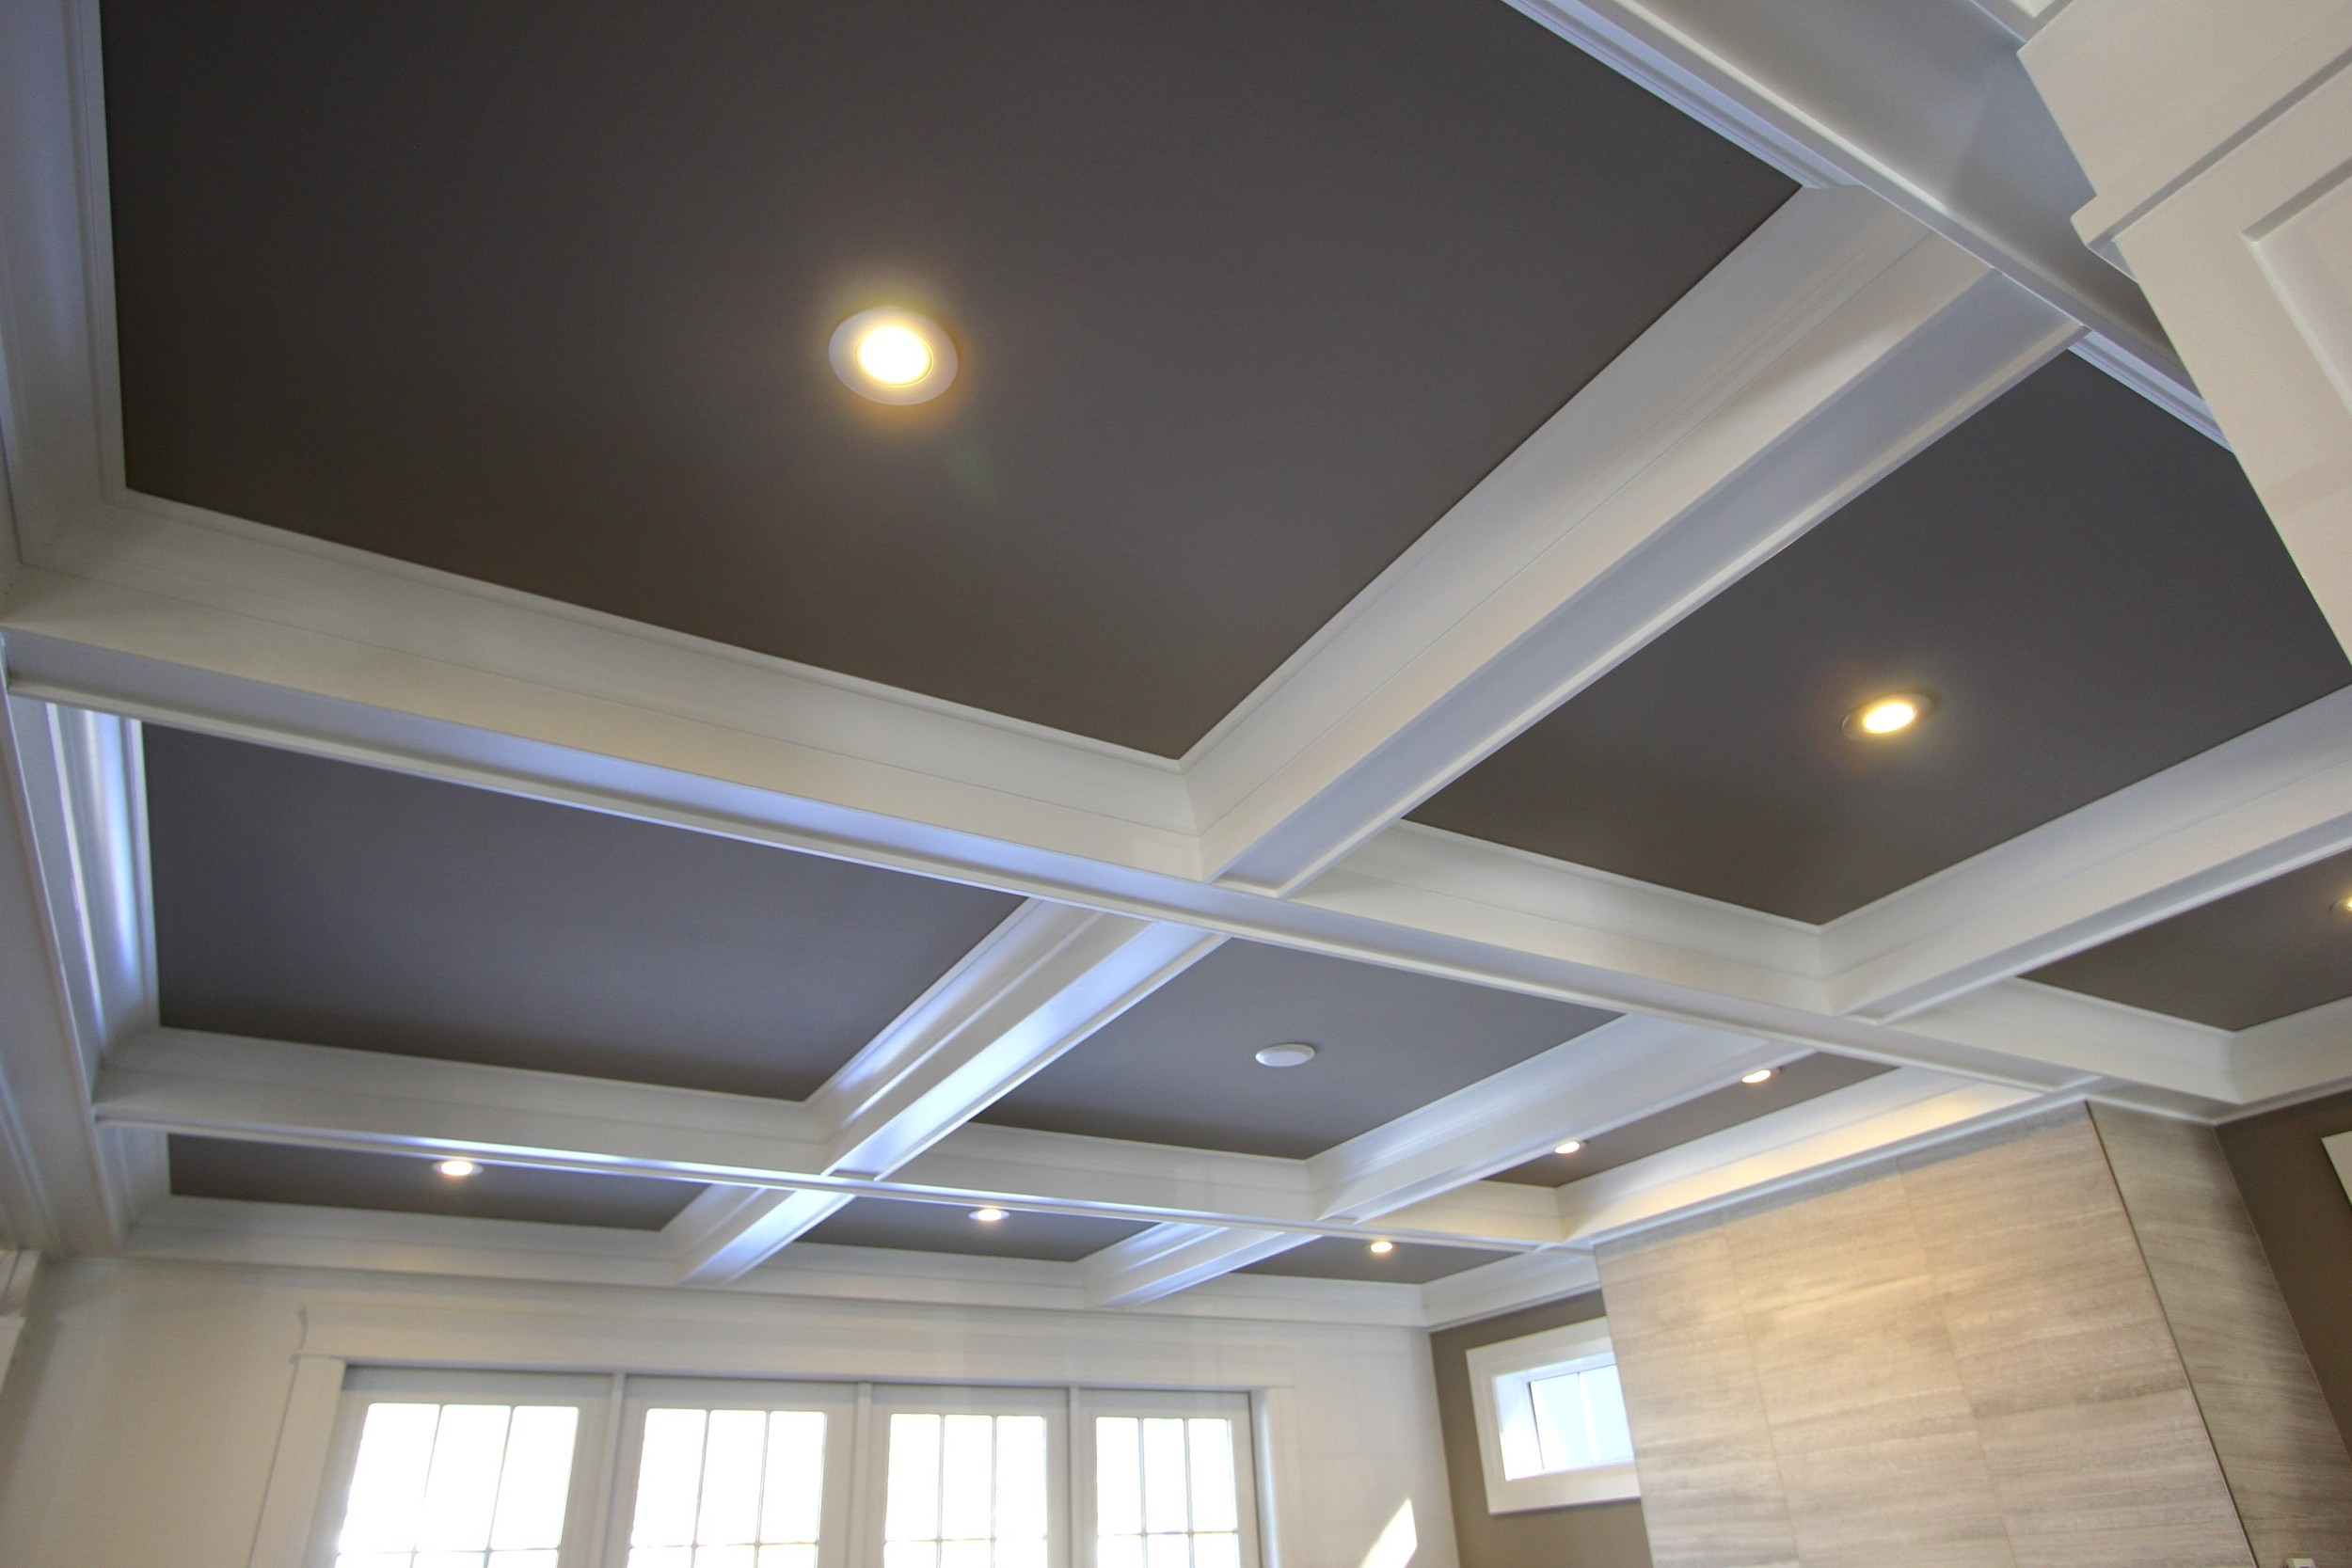 Features don't have to just go on the wall, this coffered ceiling designed by metric is a stunning architectural detail that adds a classic element to the space. The contrasting colors of the ceiling highlight the grid pattern.